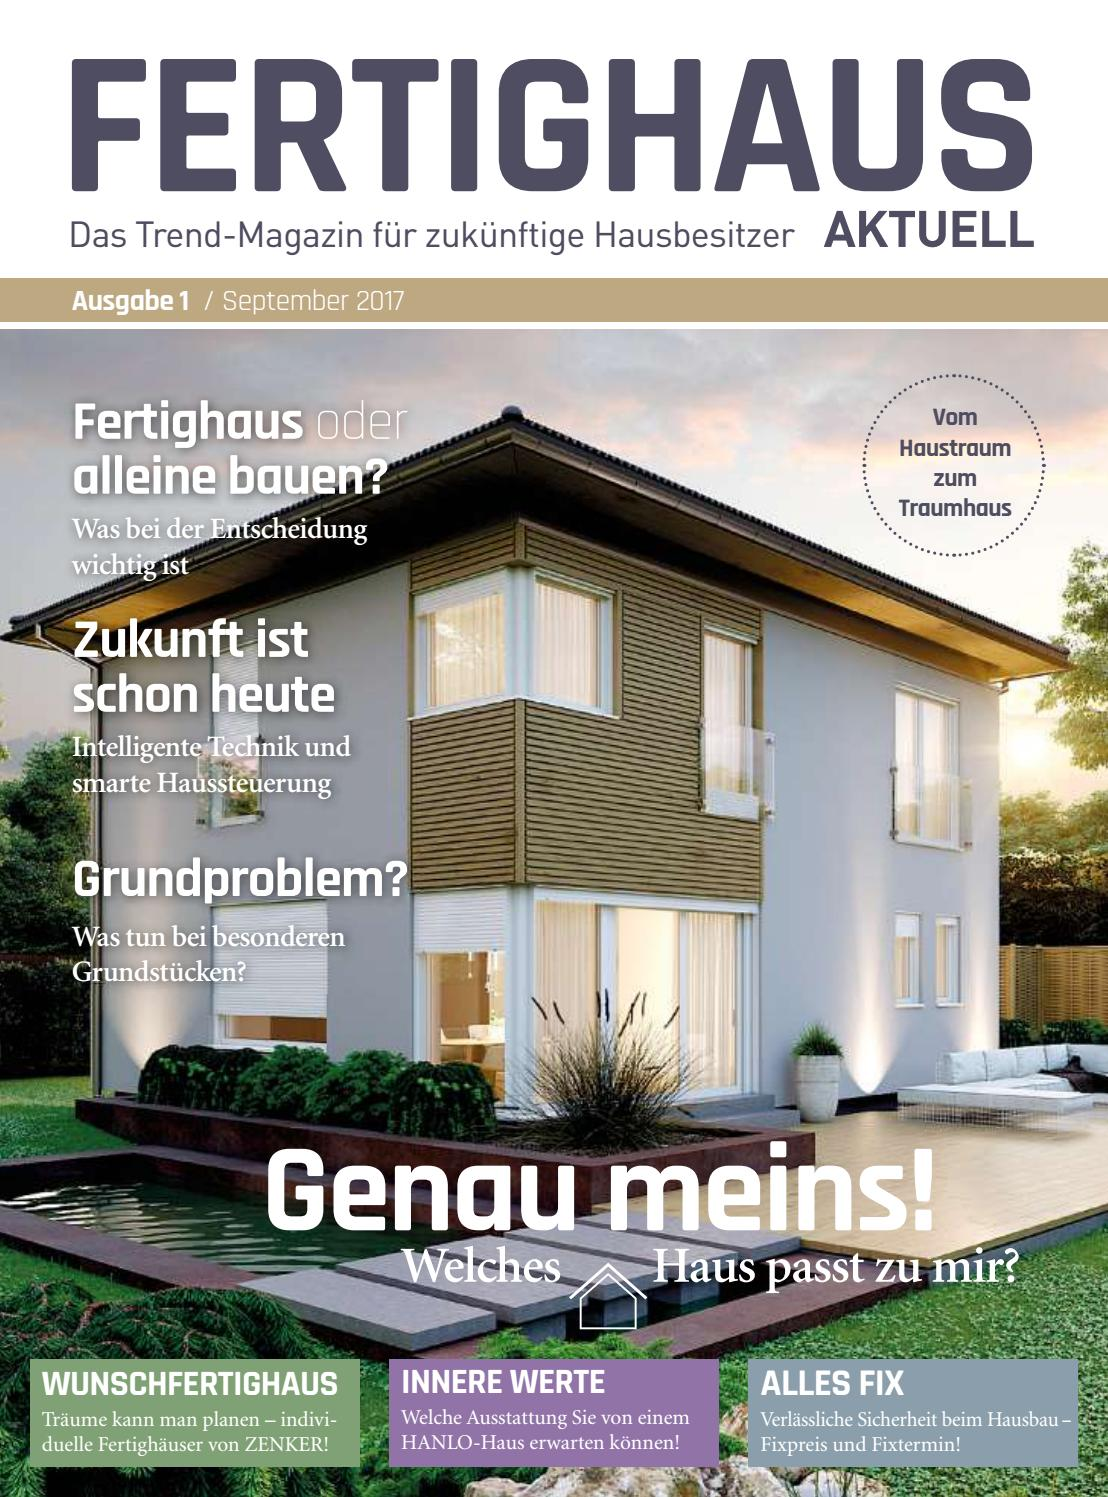 Elk fertighaus kw39 by Russmedia Digital GmbH - issuu